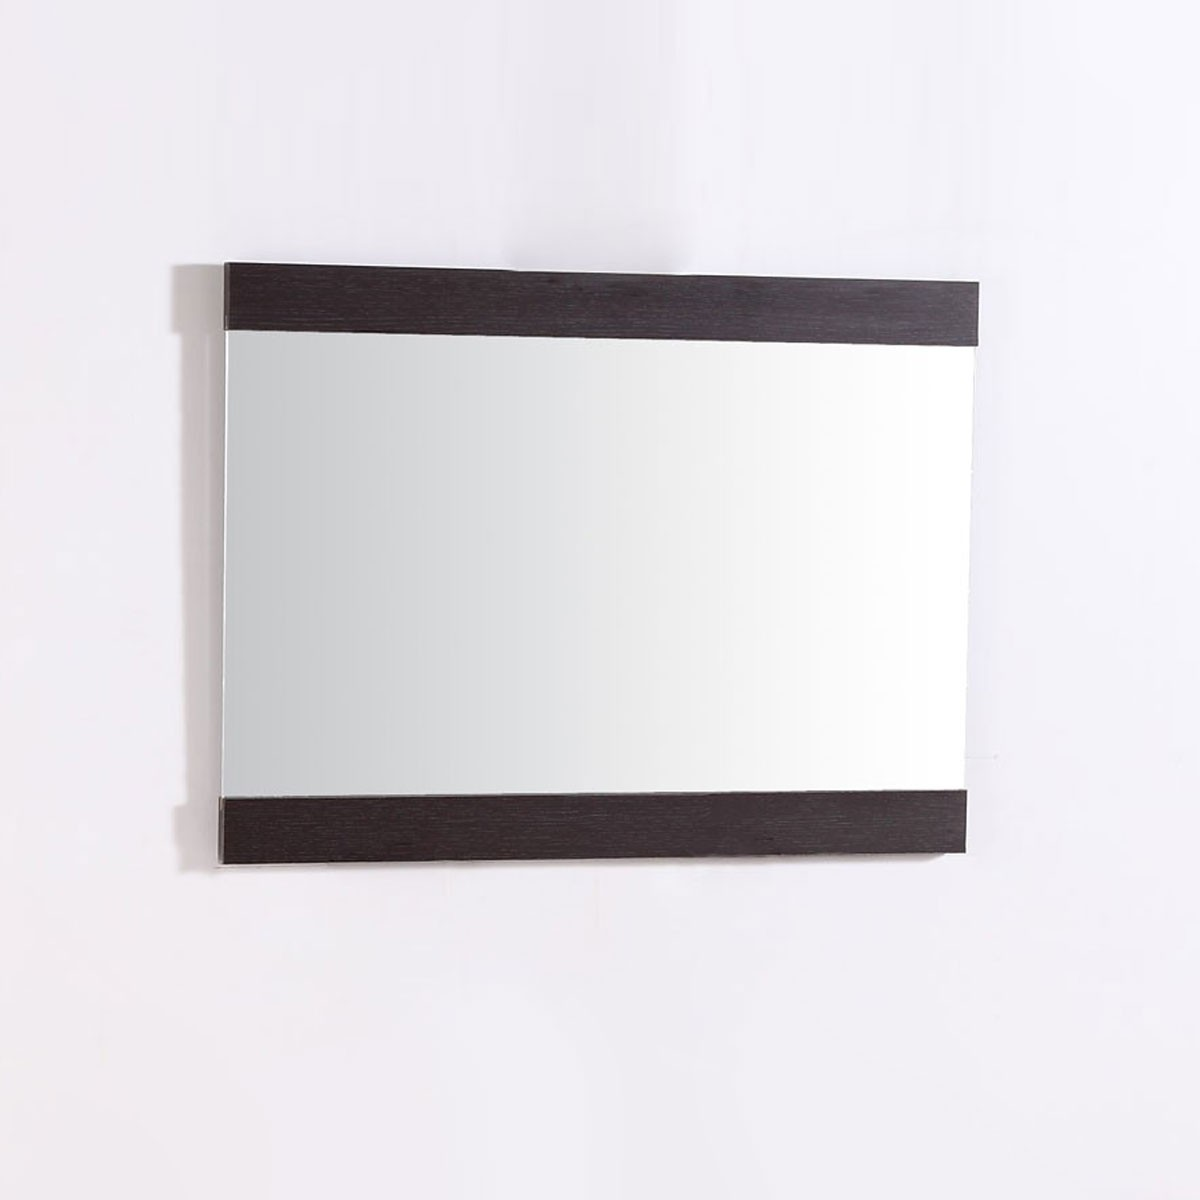 32 x 24 In. Bathroom Vanity Mirror (DK-TH9021D-M)